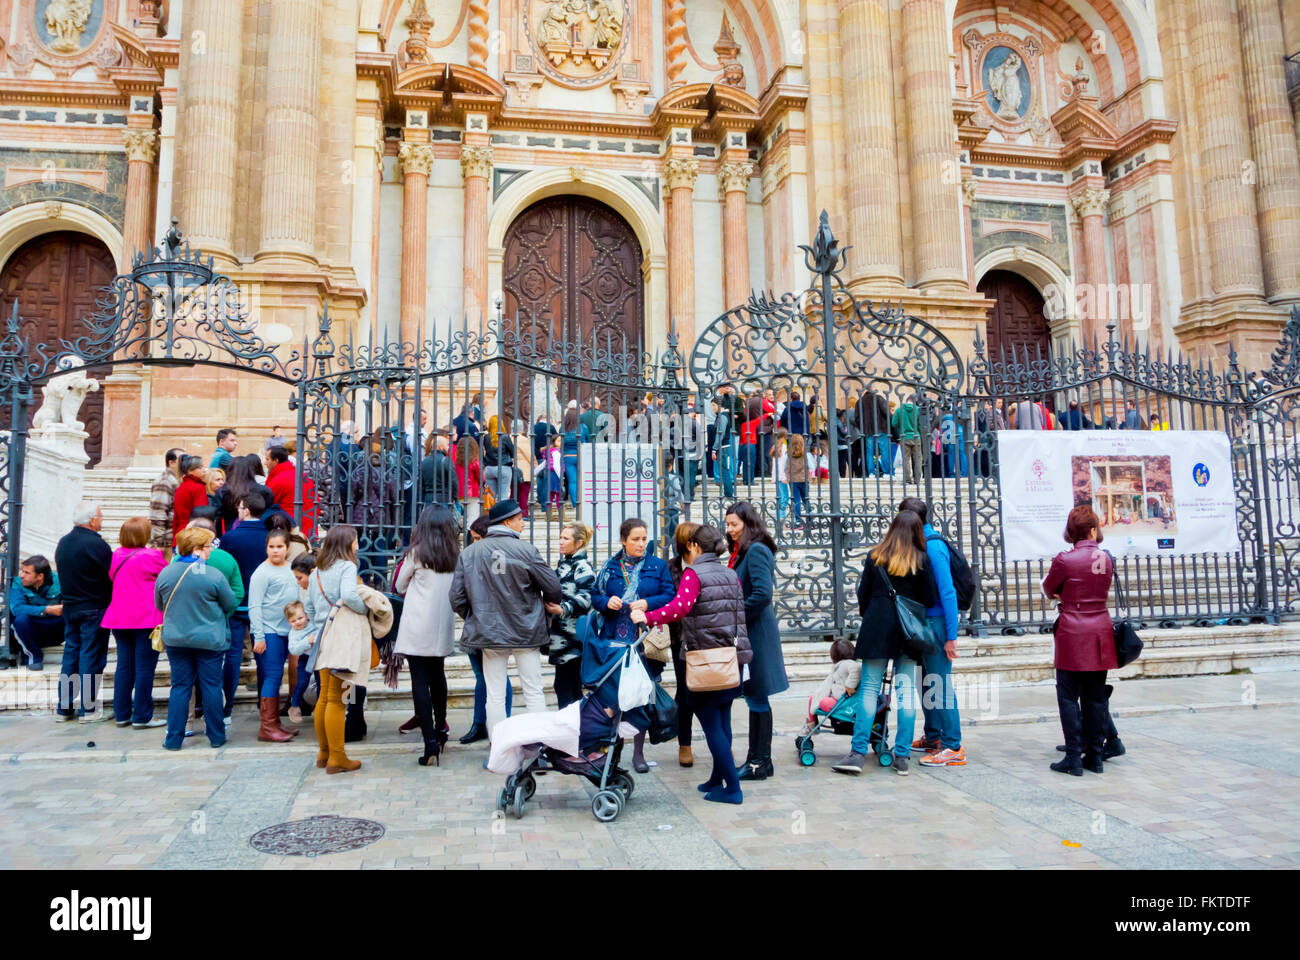 Queue to the Cathedral, Plaza Obispo, old town, Malaga, Andalucia, Spain - Stock Image